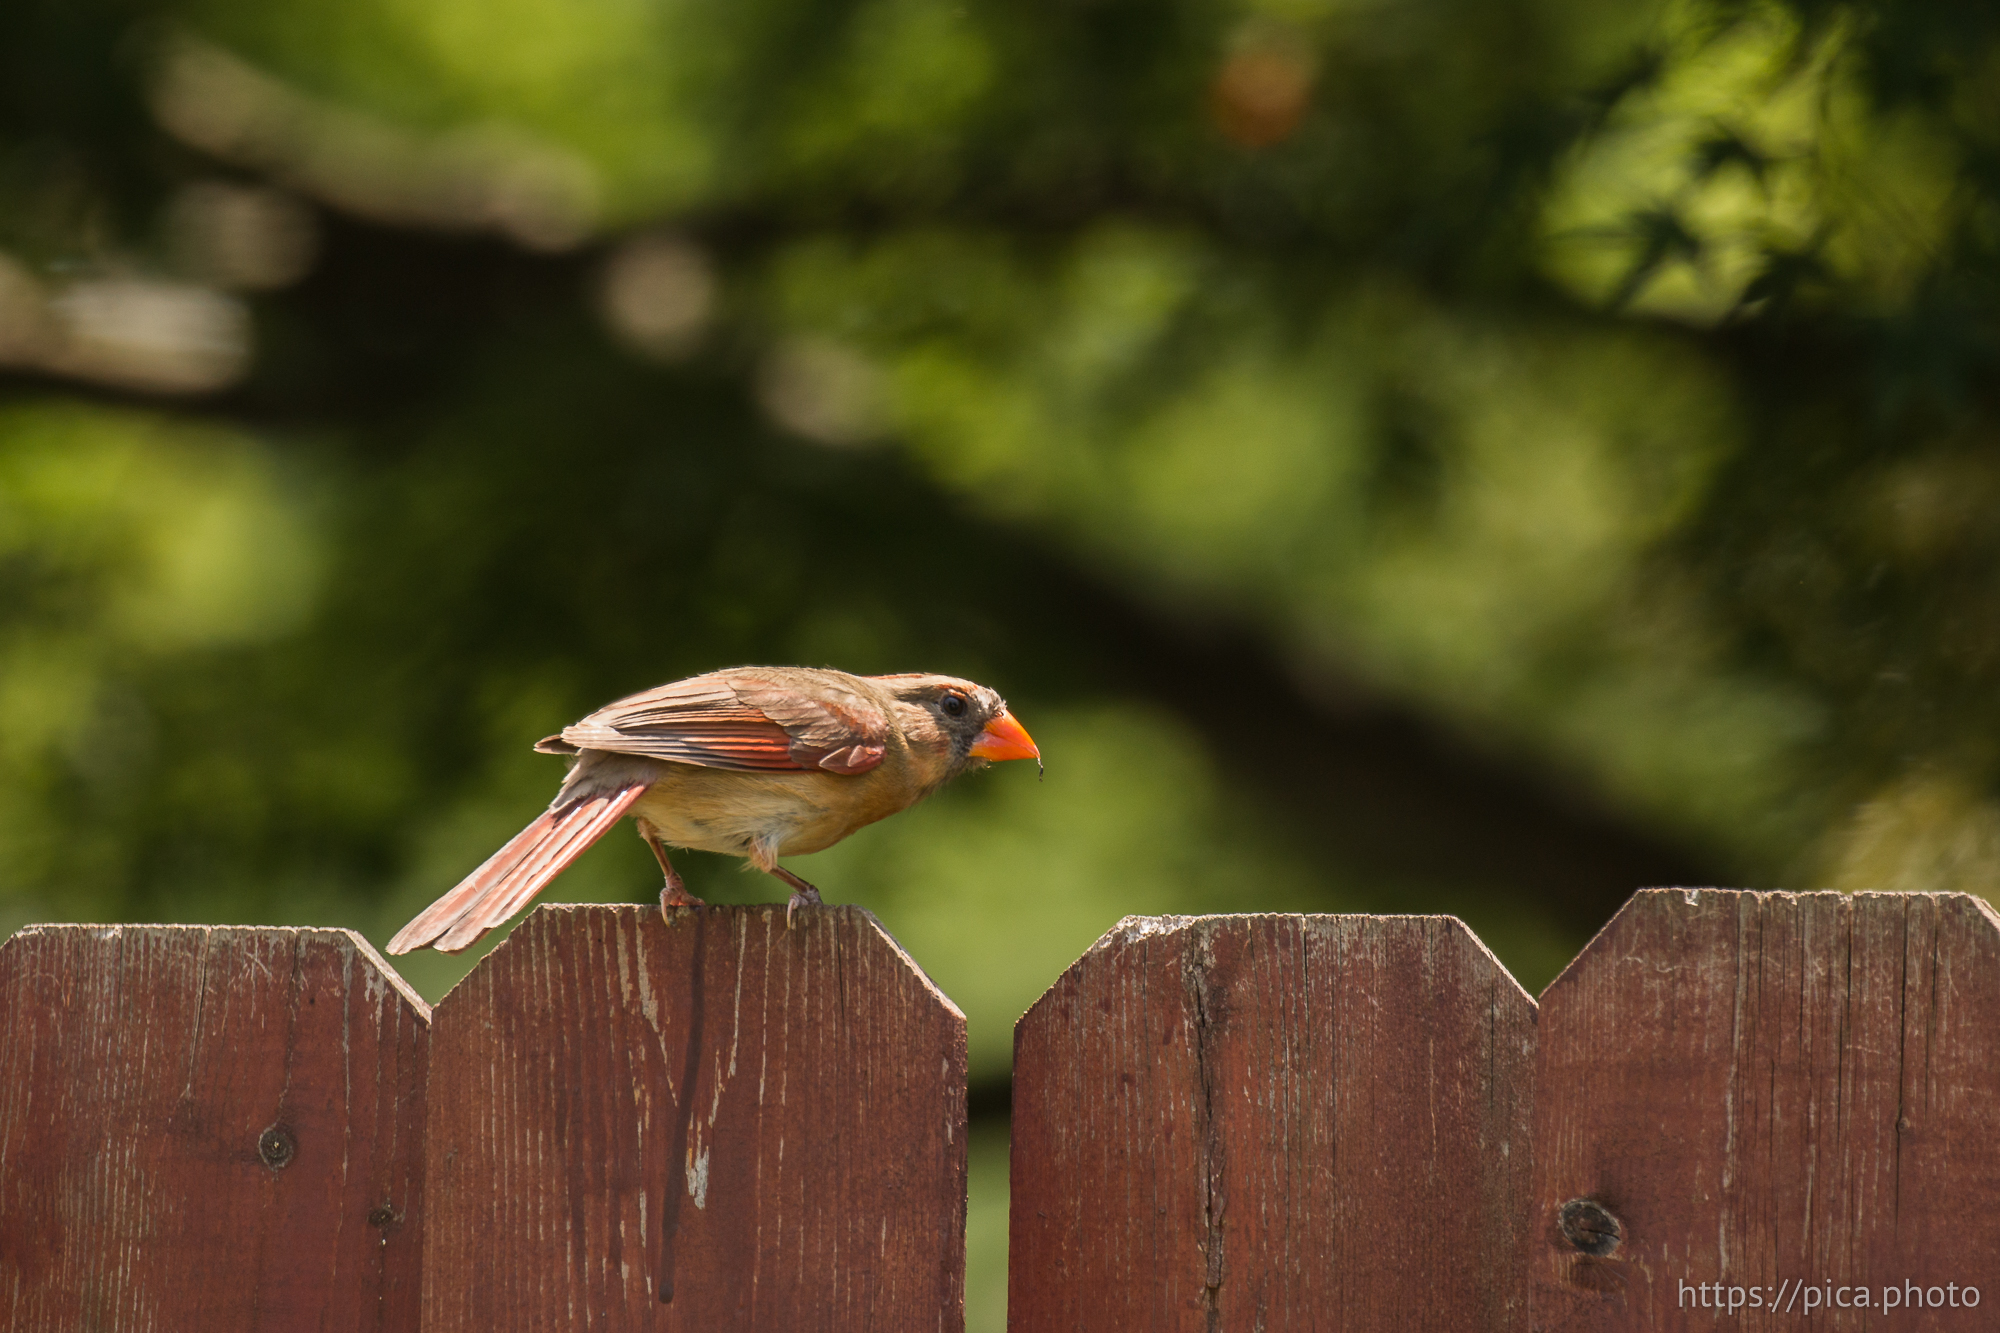 Cardinal sitting on fence, looking back